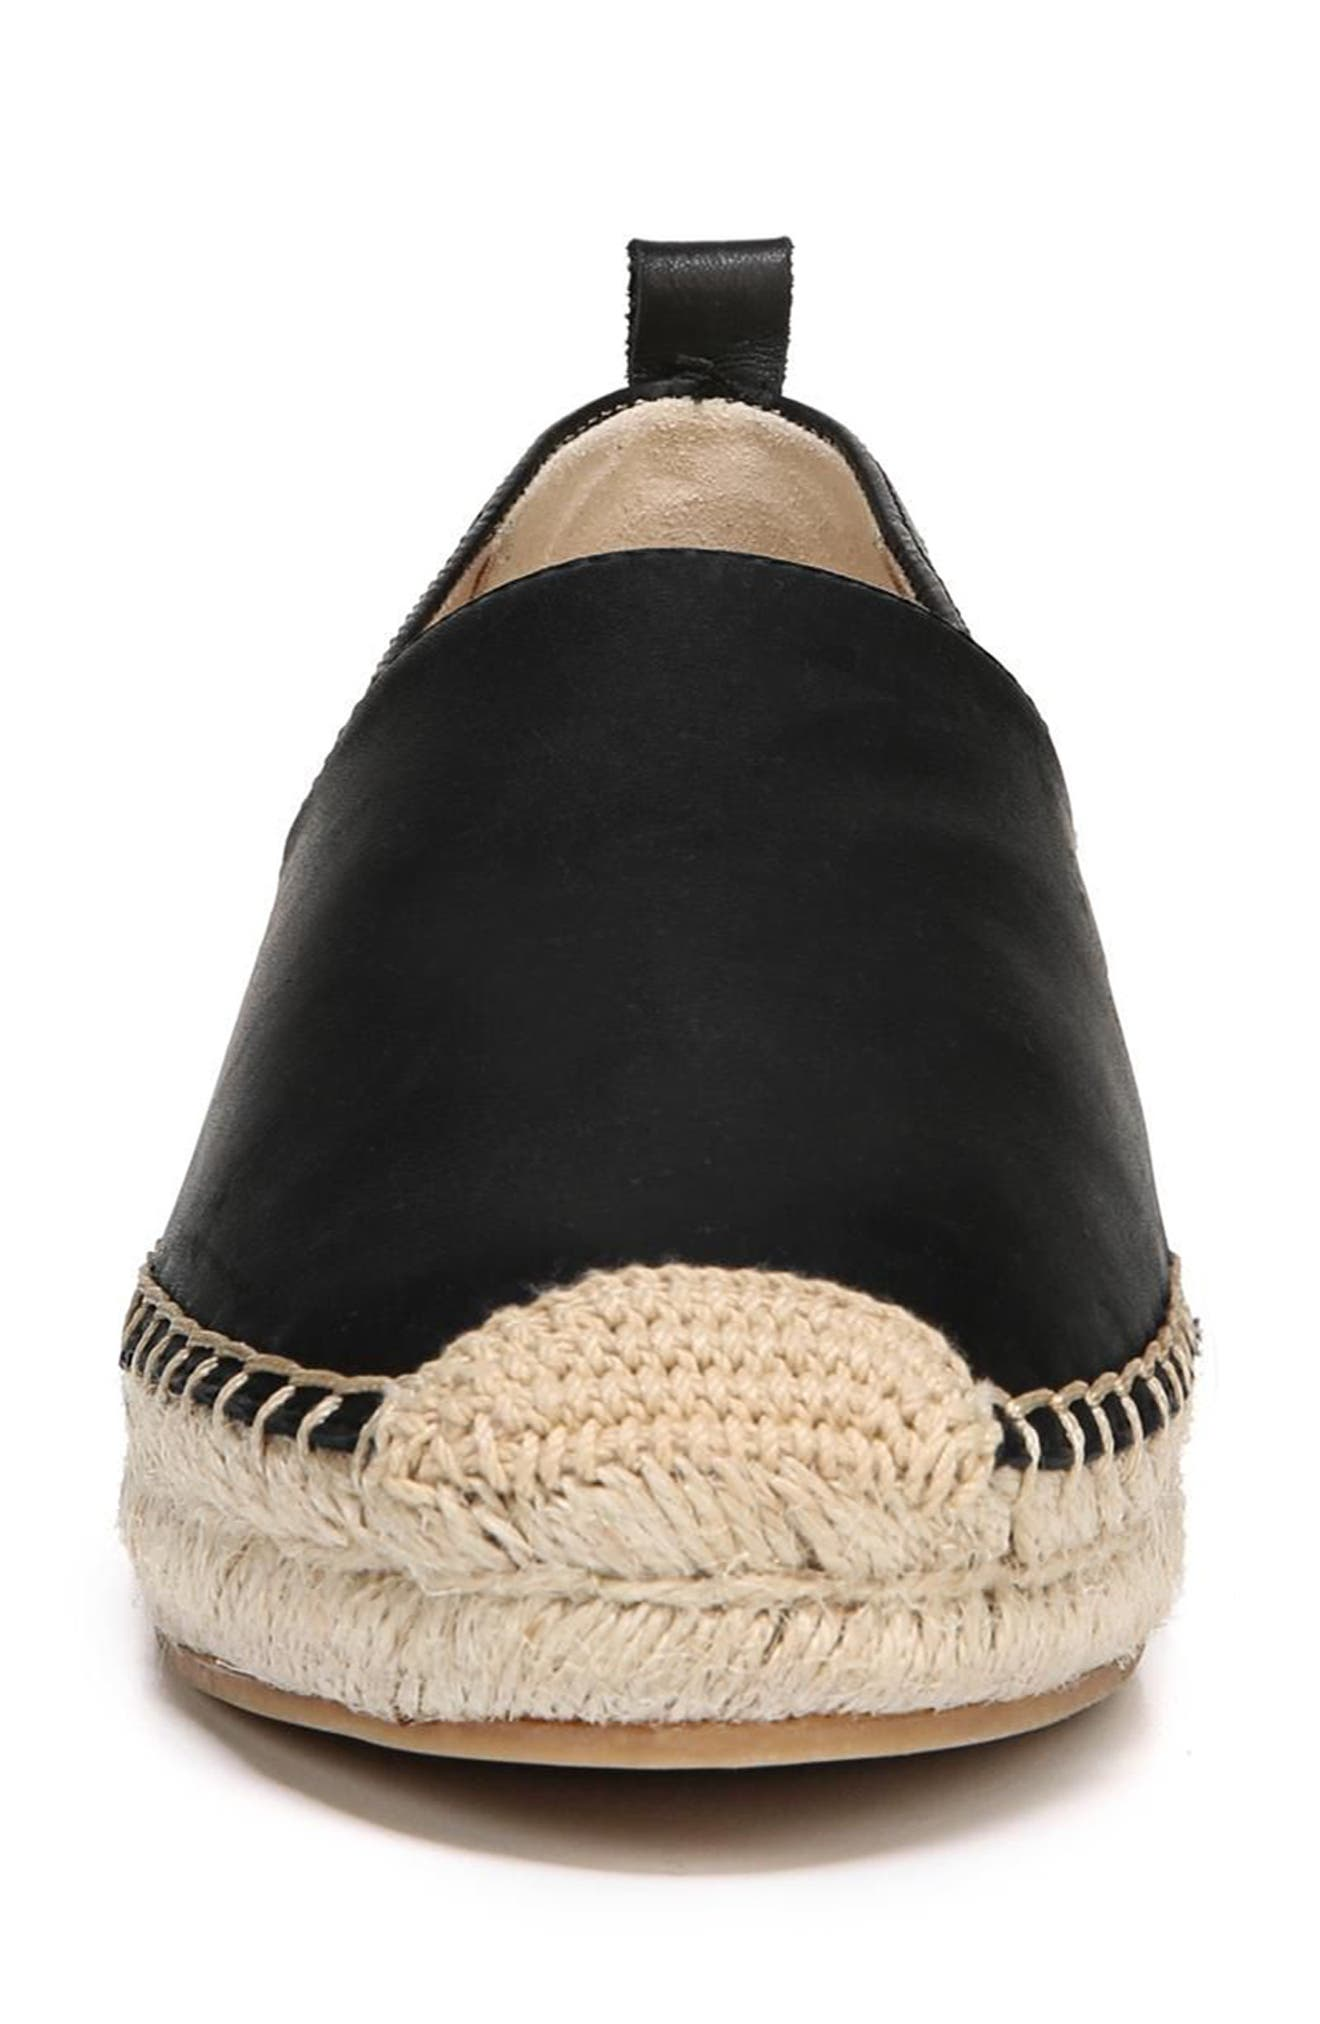 SAM EDELMAN, Khloe Espadrille Flat, Alternate thumbnail 4, color, BLACK LEATHER